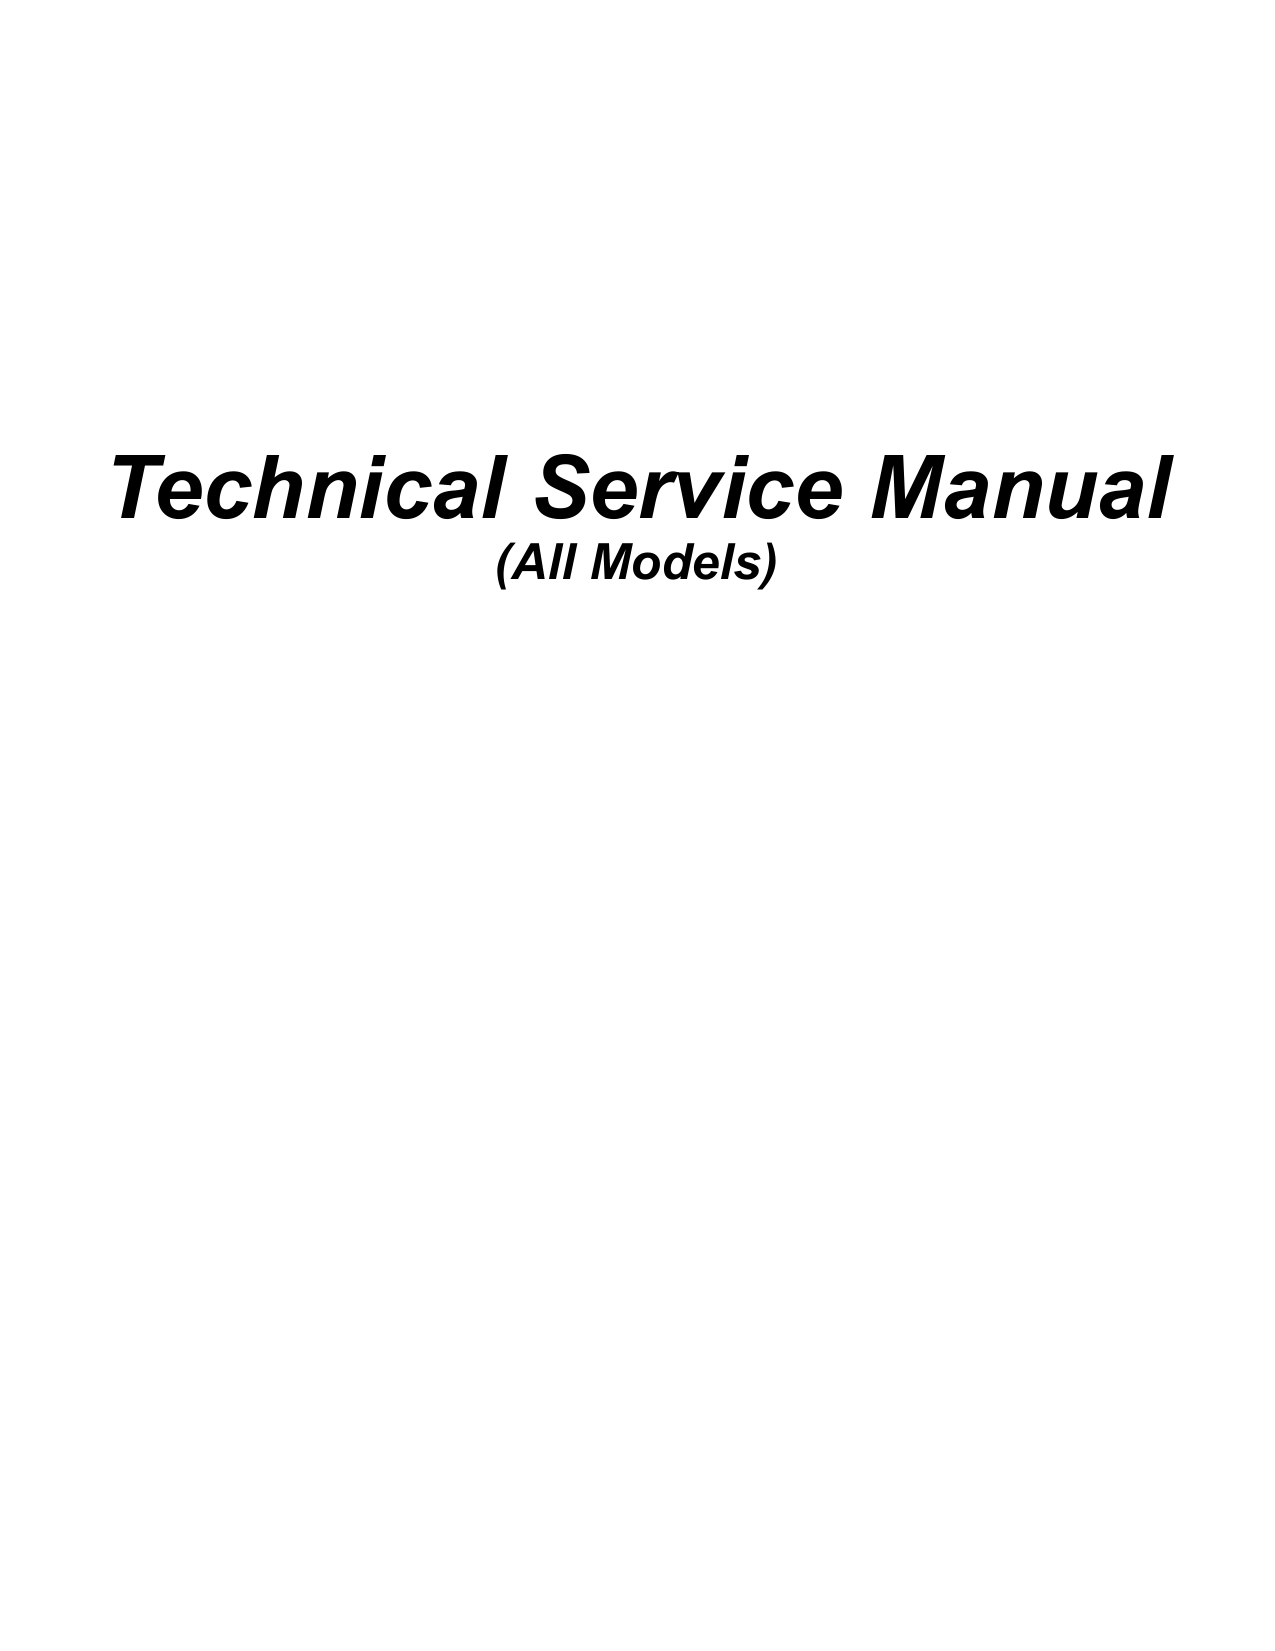 pdf for true freezer t-35f manual